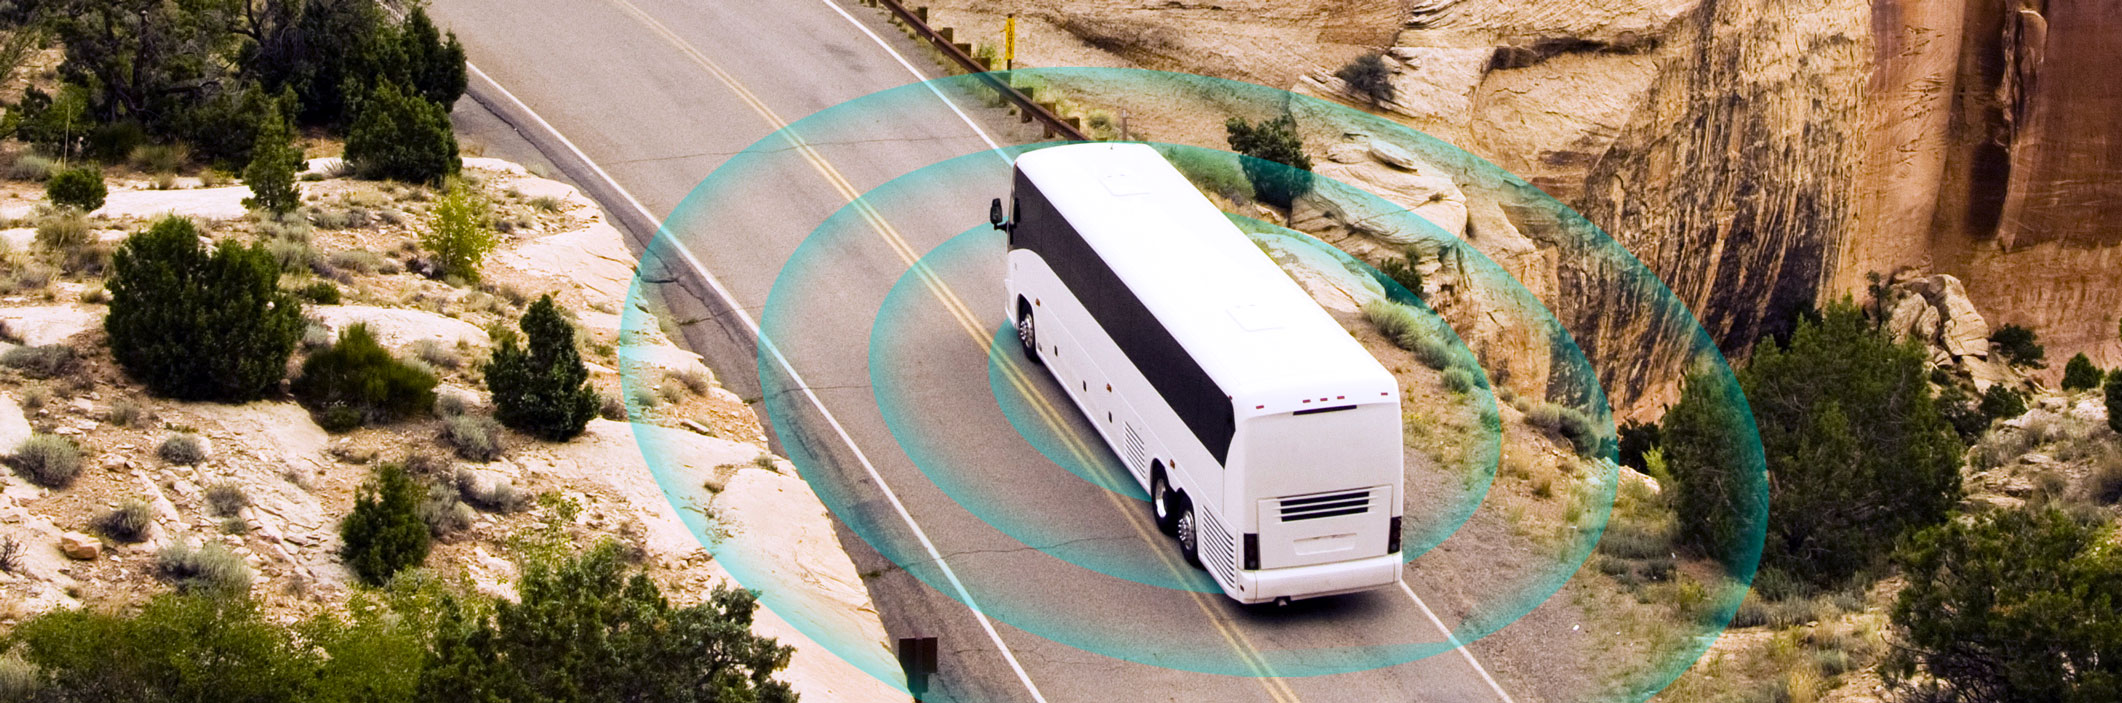 All New Multi-Camera Systems for 360° Fleet Visibility